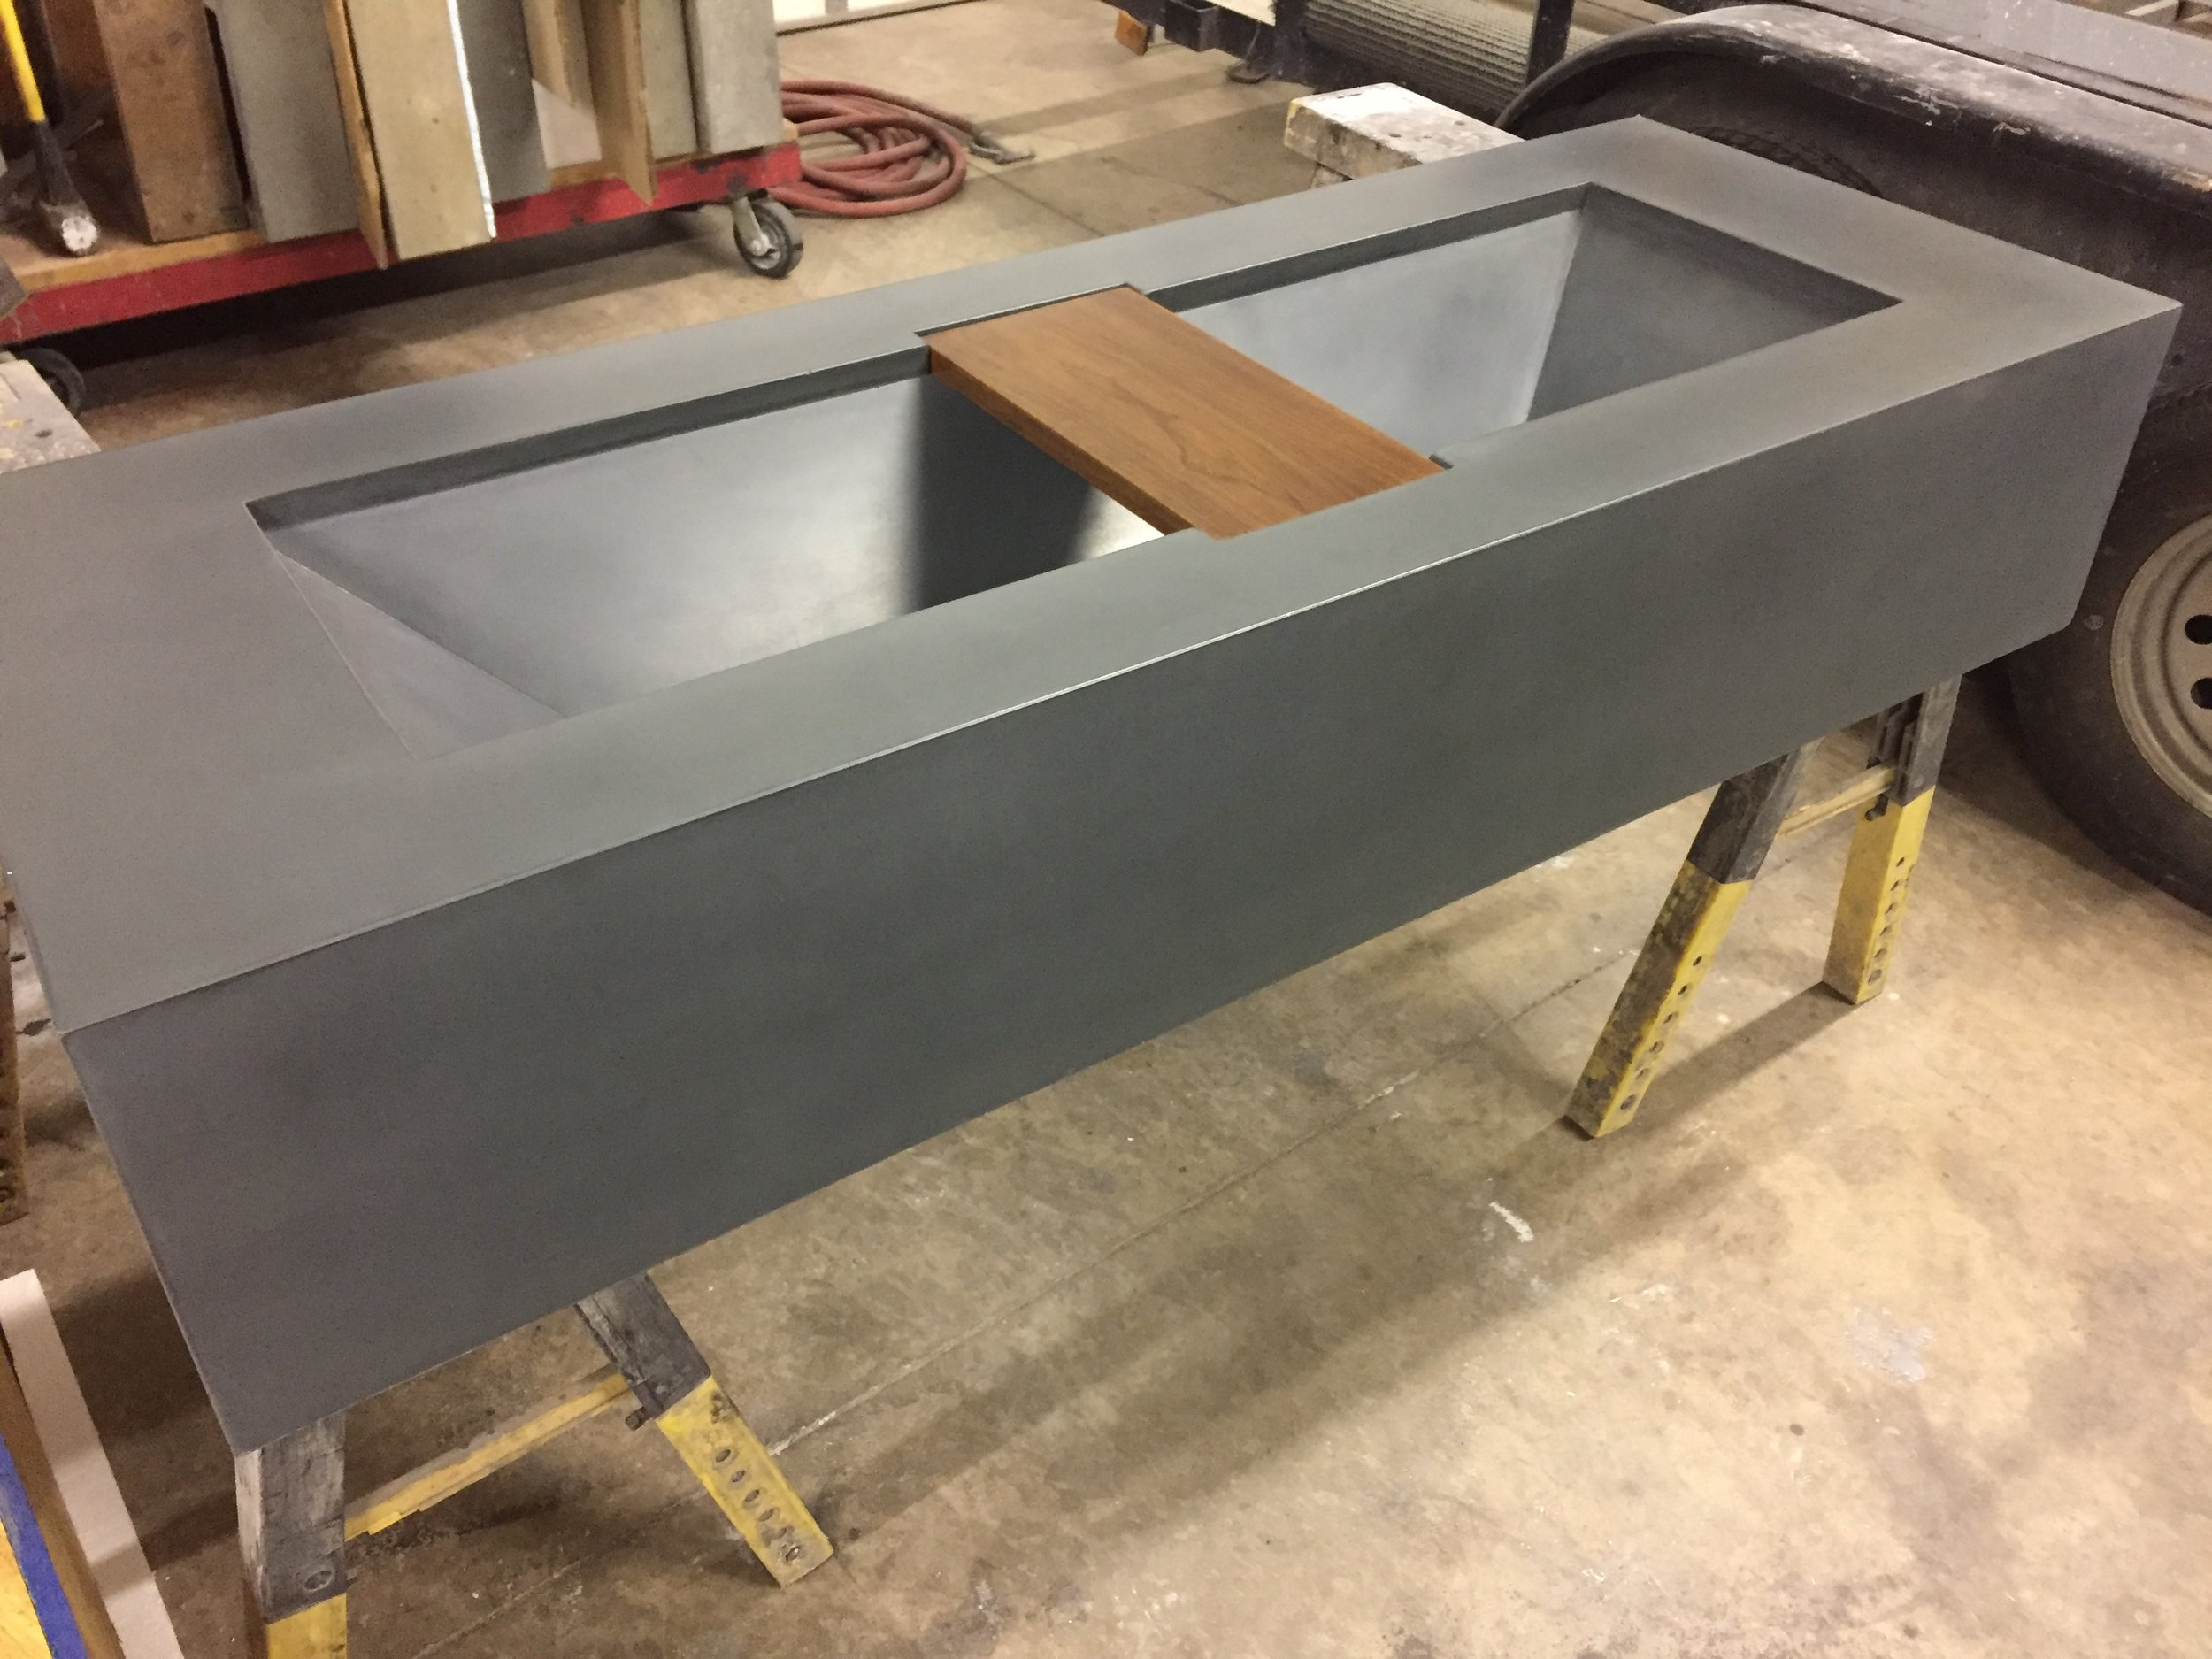 CUSTOM SINK WITH TEAK INTEGRAL SHELF